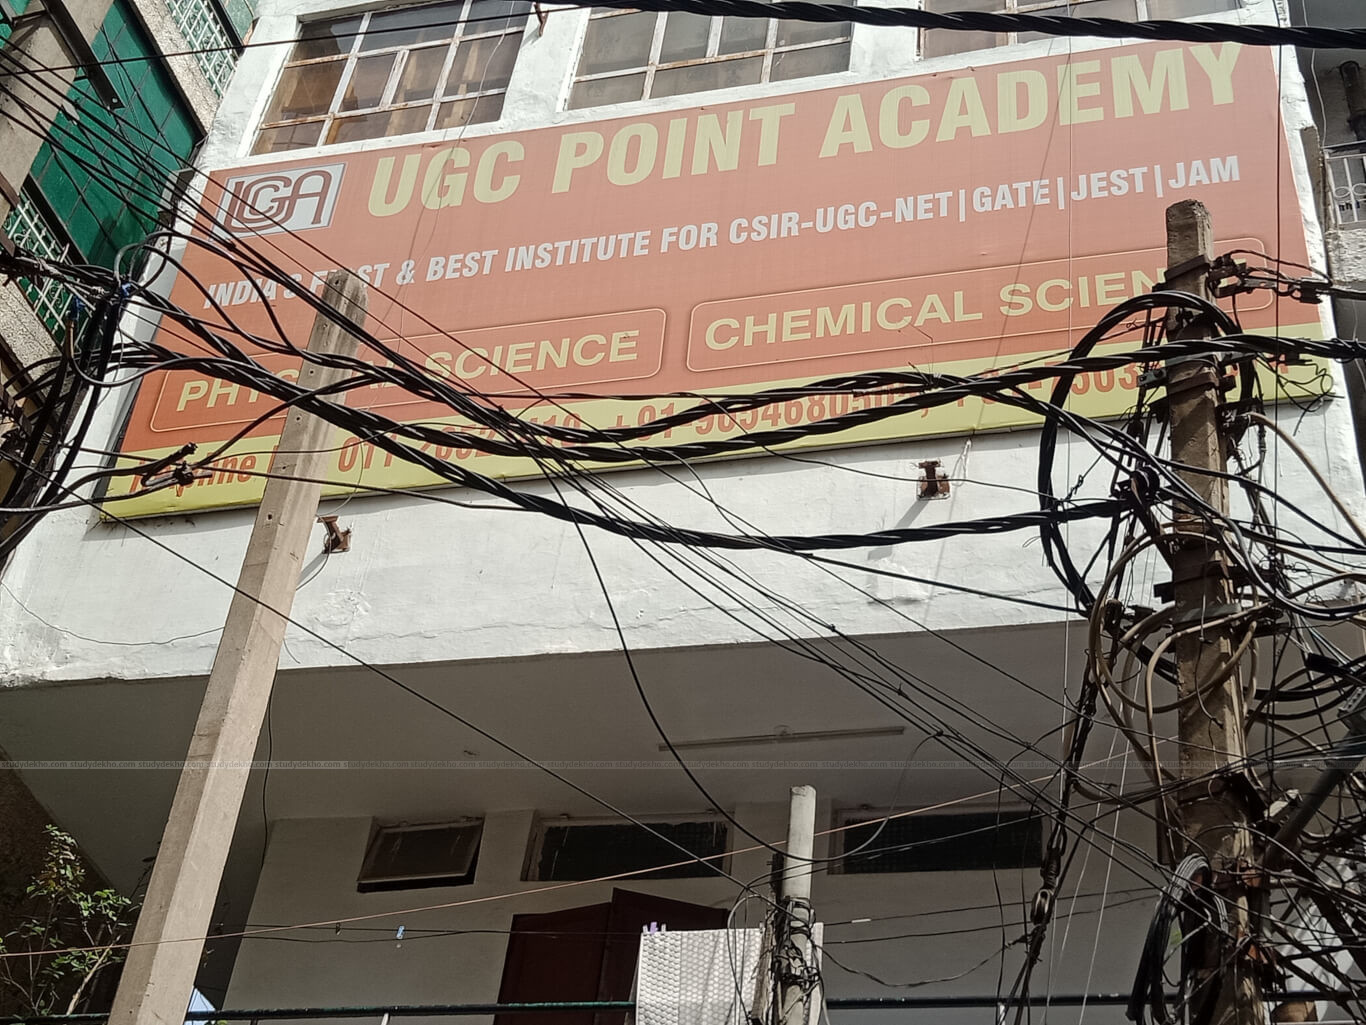 UGC Point Academy Gallery